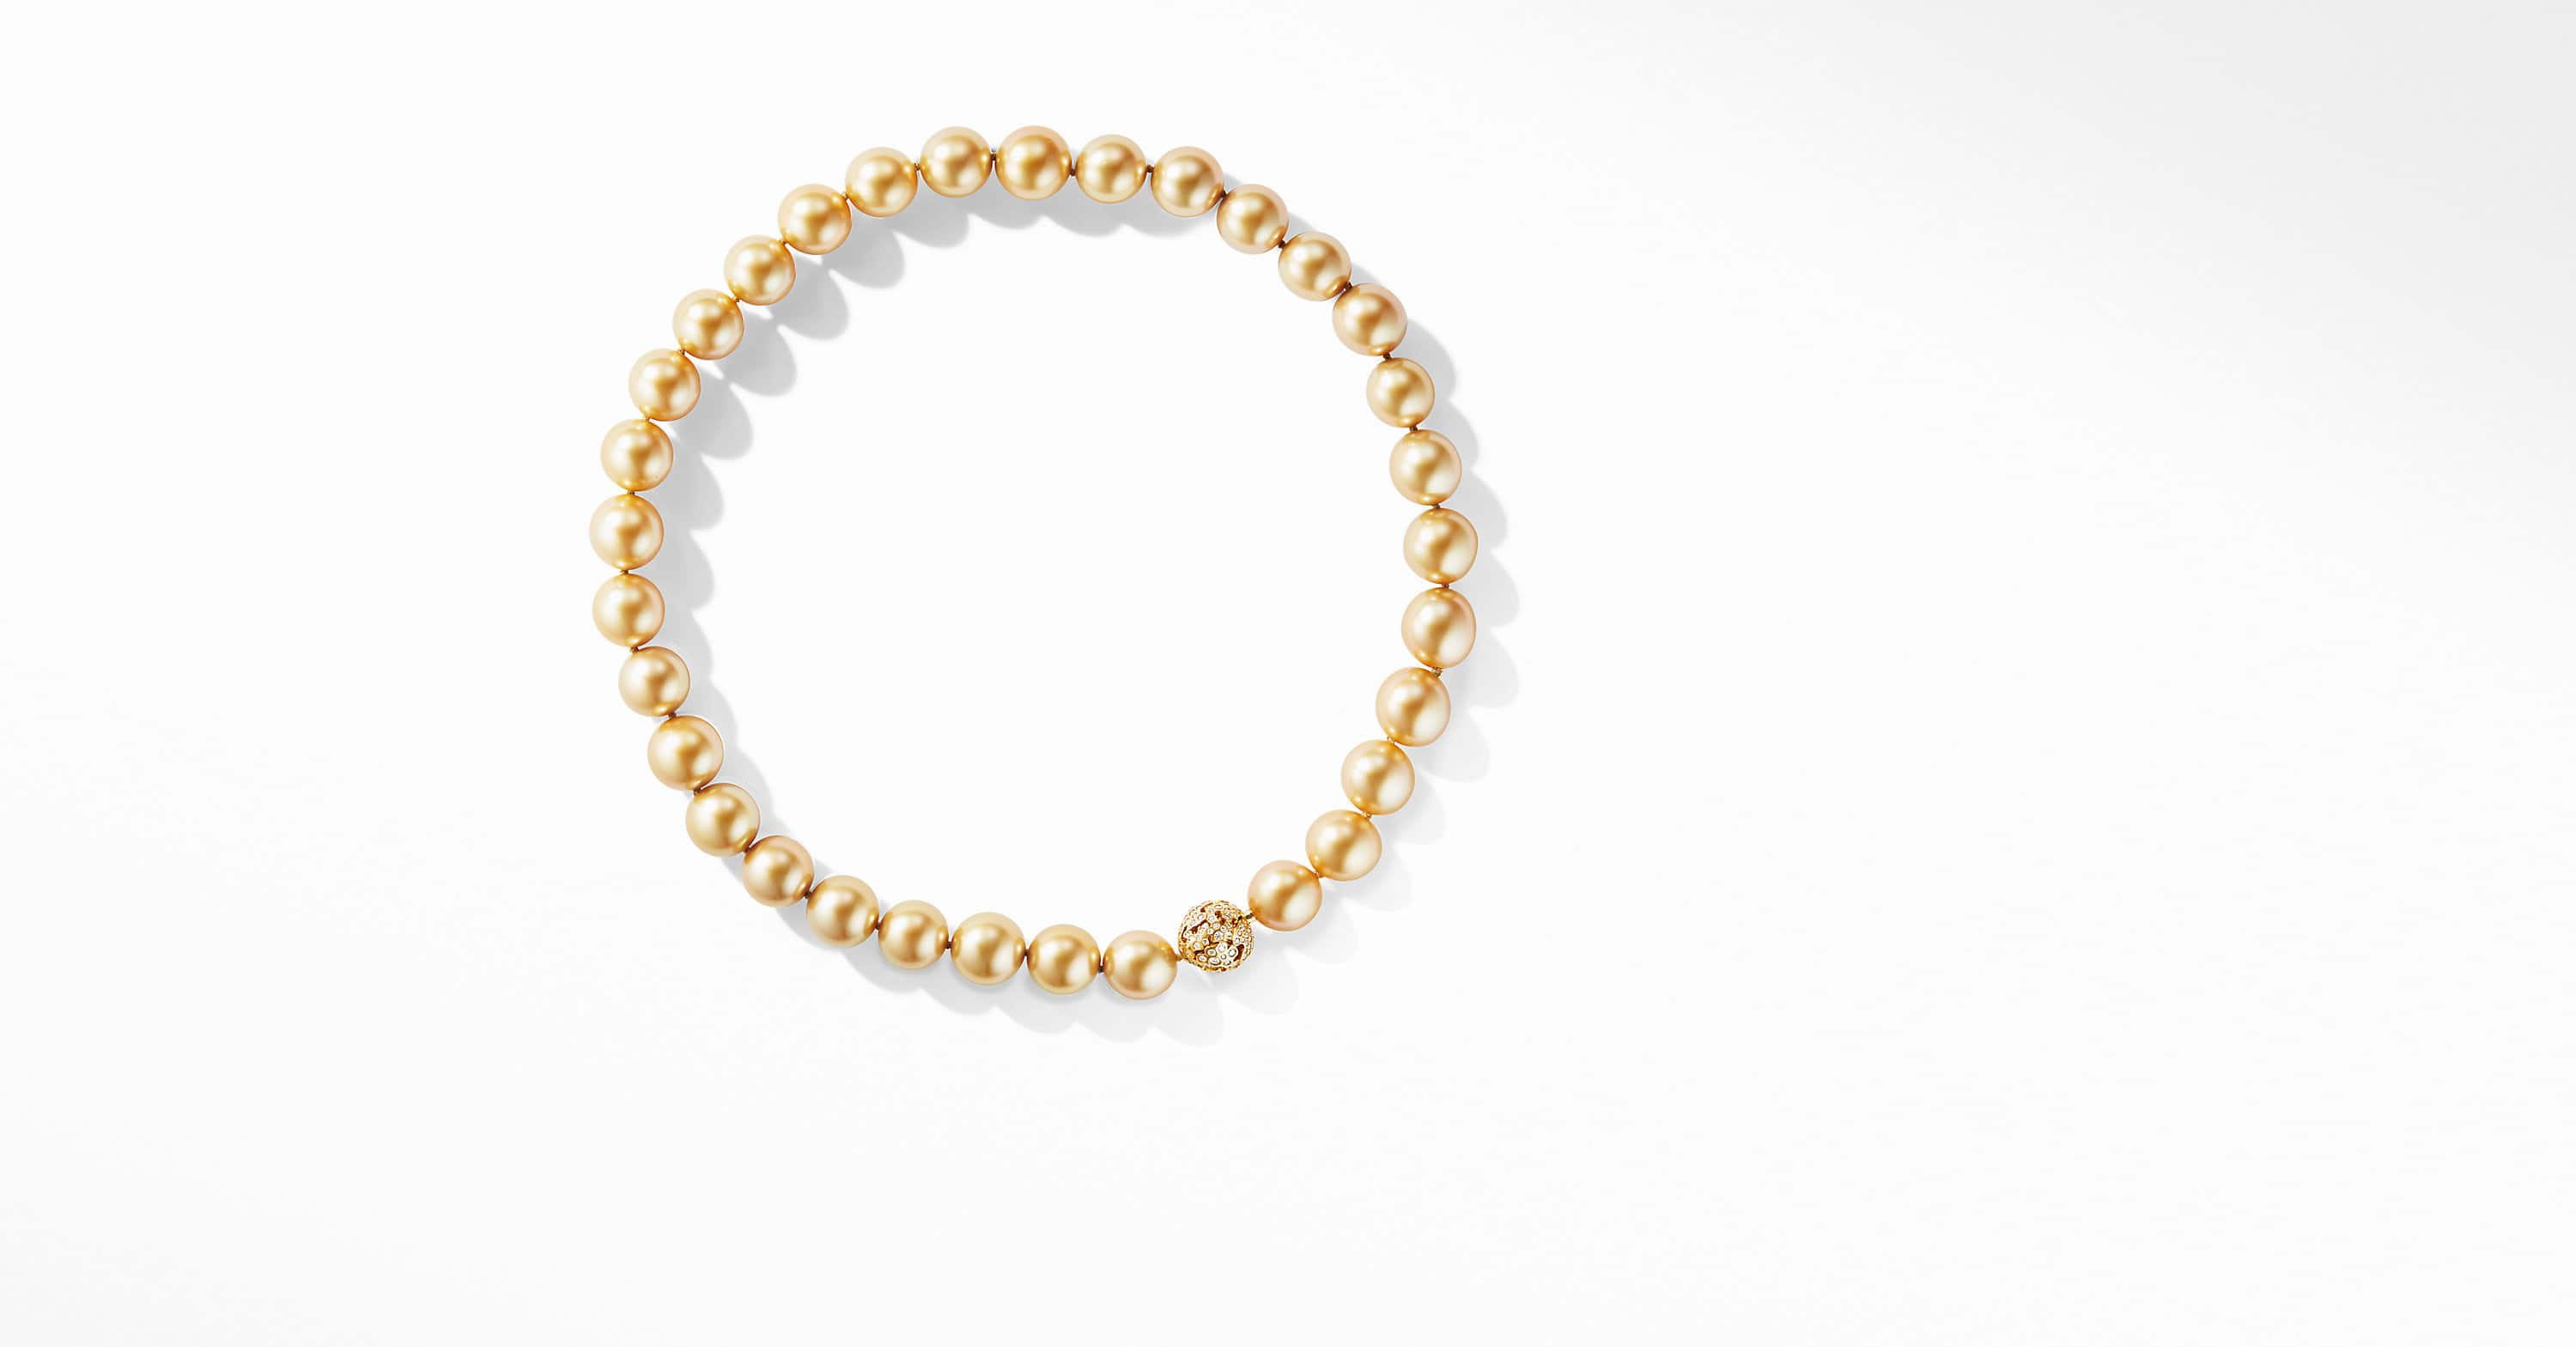 Day Petals Golden Pearl Necklace in Yellow Gold with Diamonds